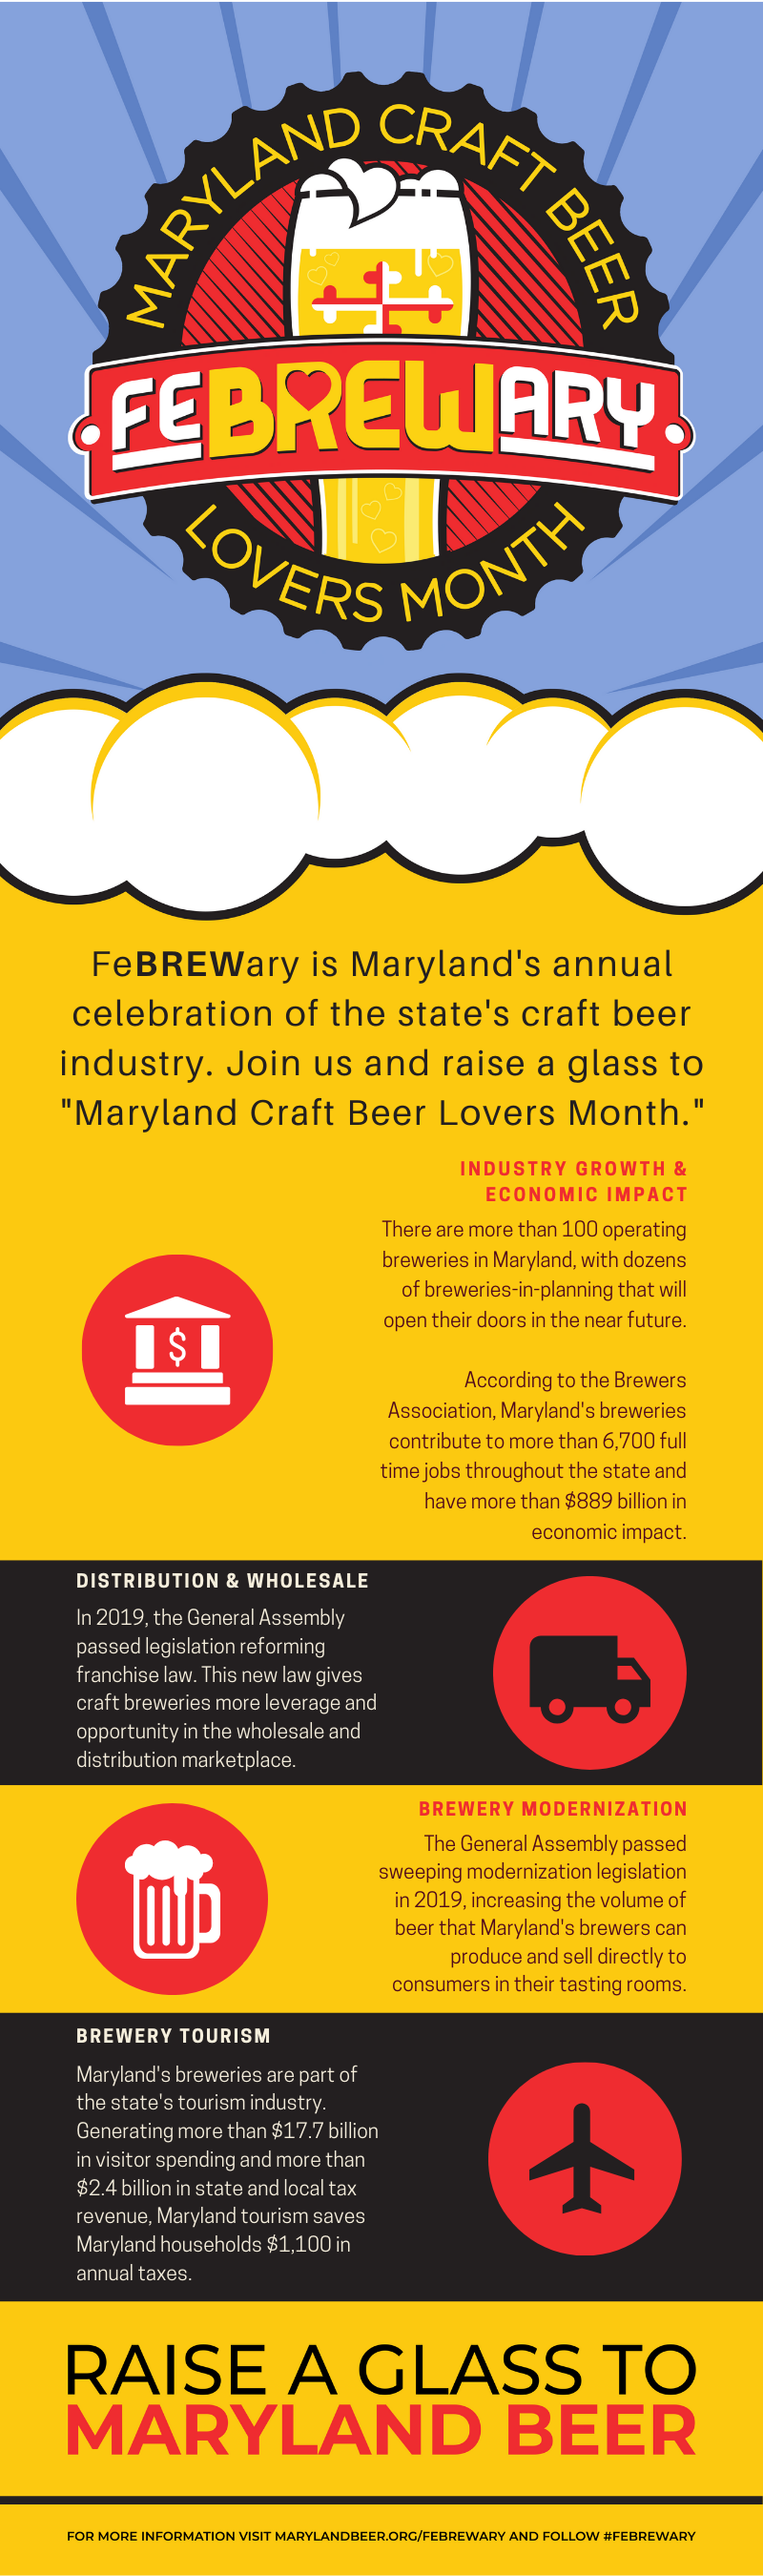 2020 FeBREWary Infographic with statistics about Maryland's brewing industry.